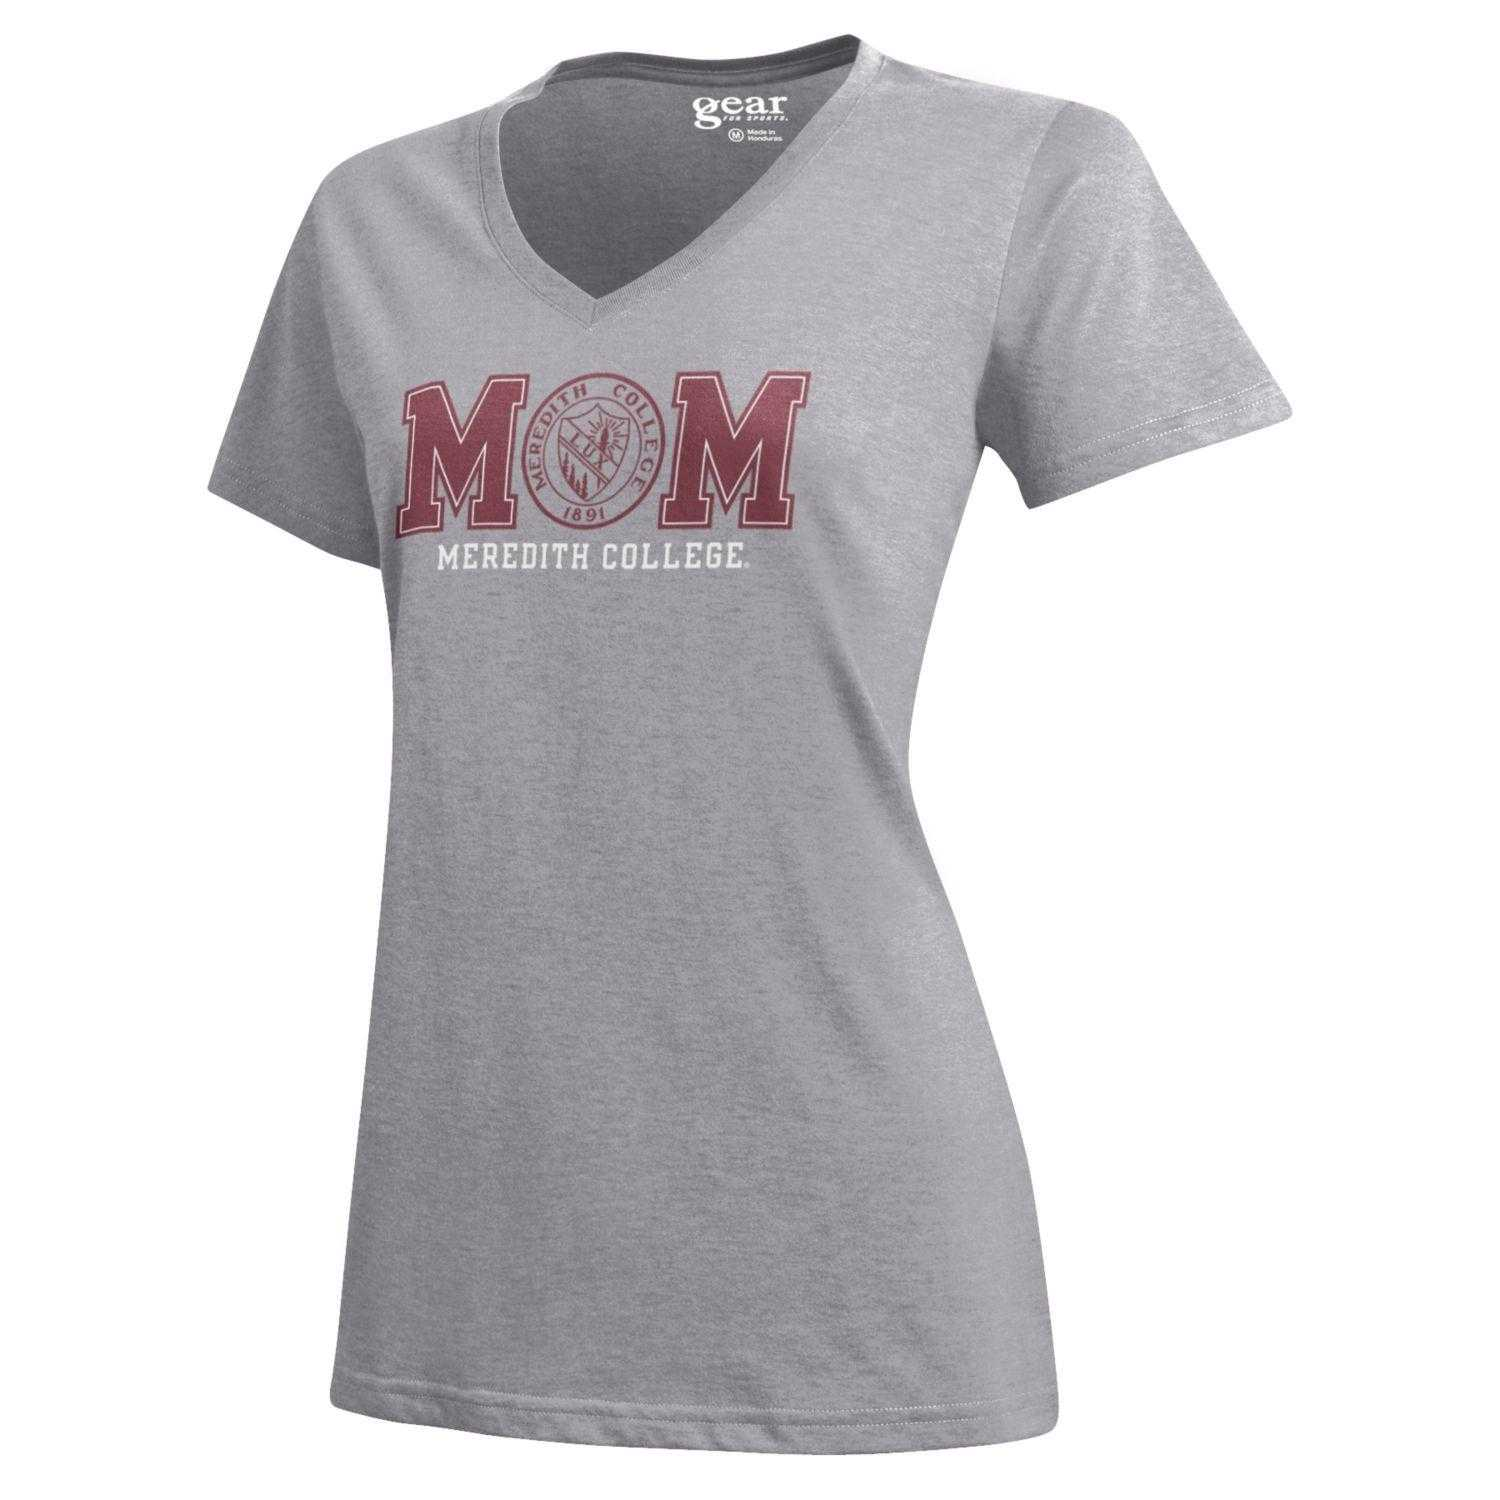 Image for the Mom V-Neck T-shirt, Oxford Heather w/Seal product